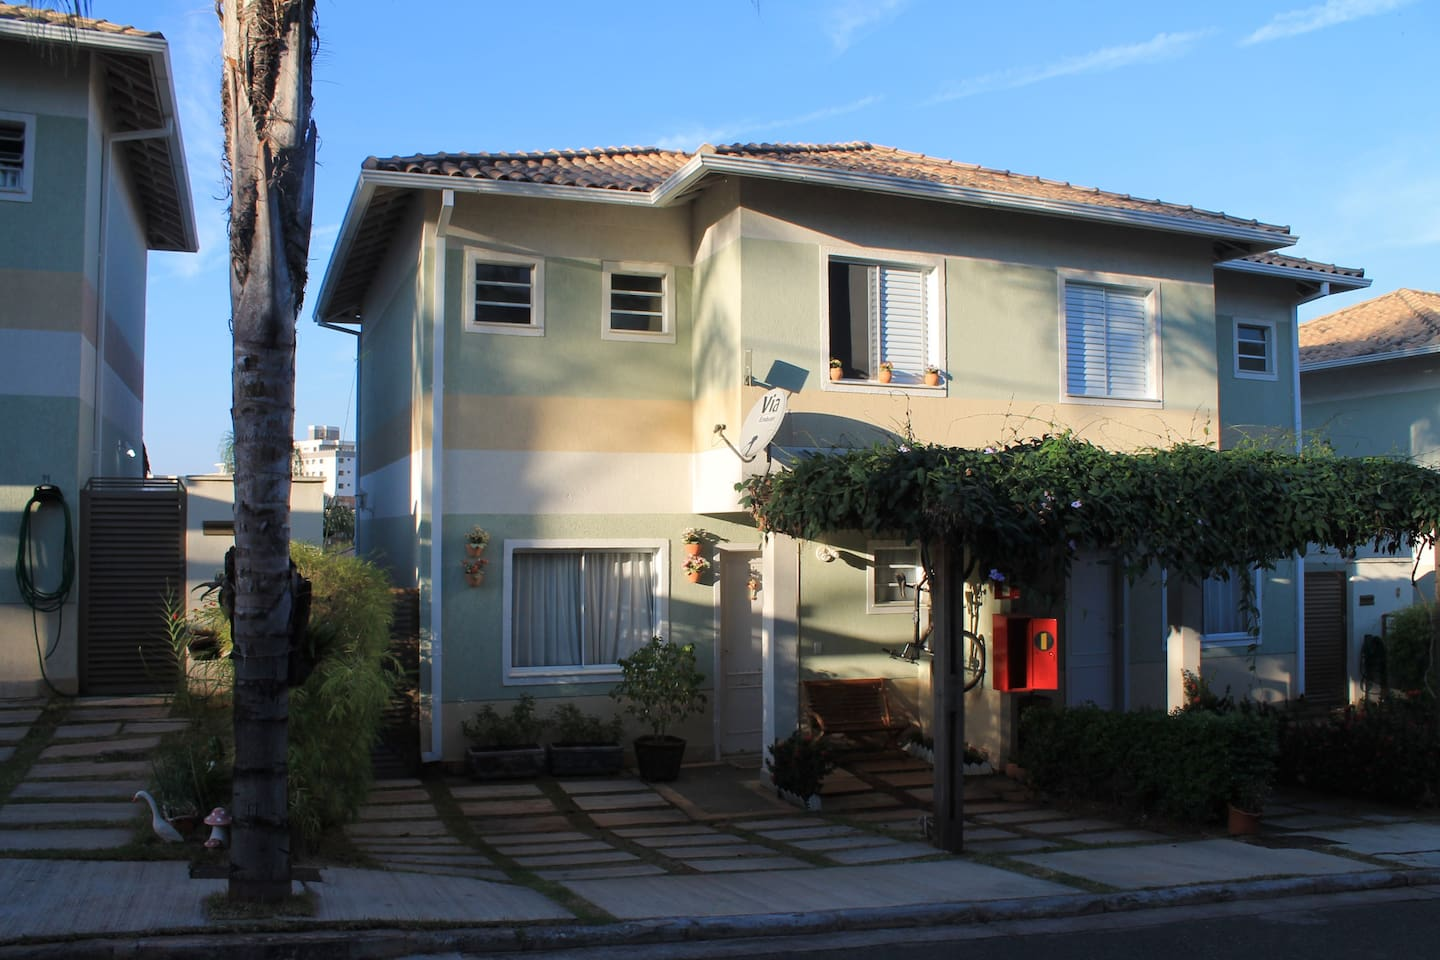 For rent beautiful two bedroom home in gated community with full security condominium.